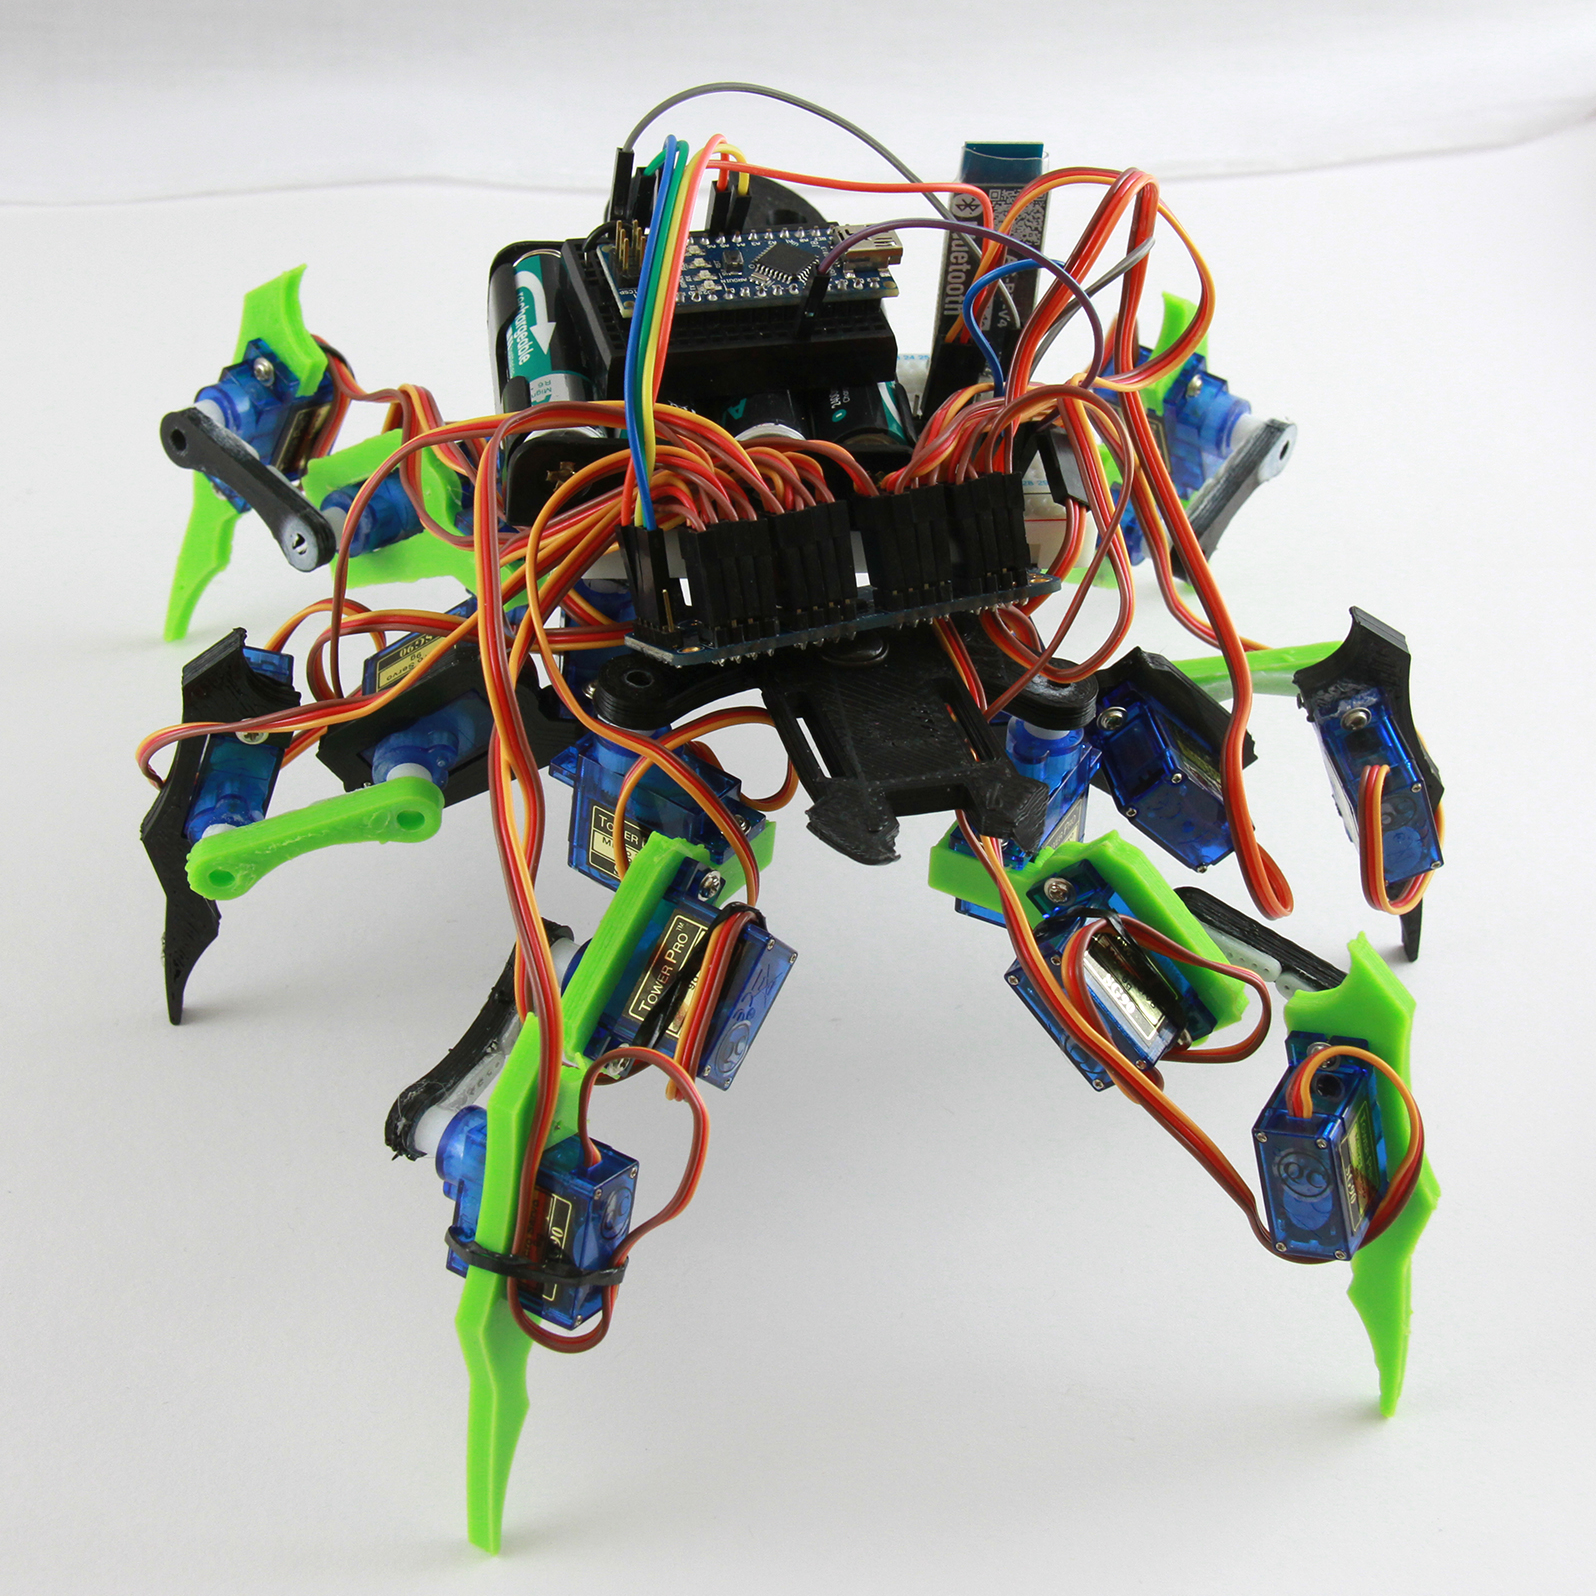 3d printed insectoid robot feature